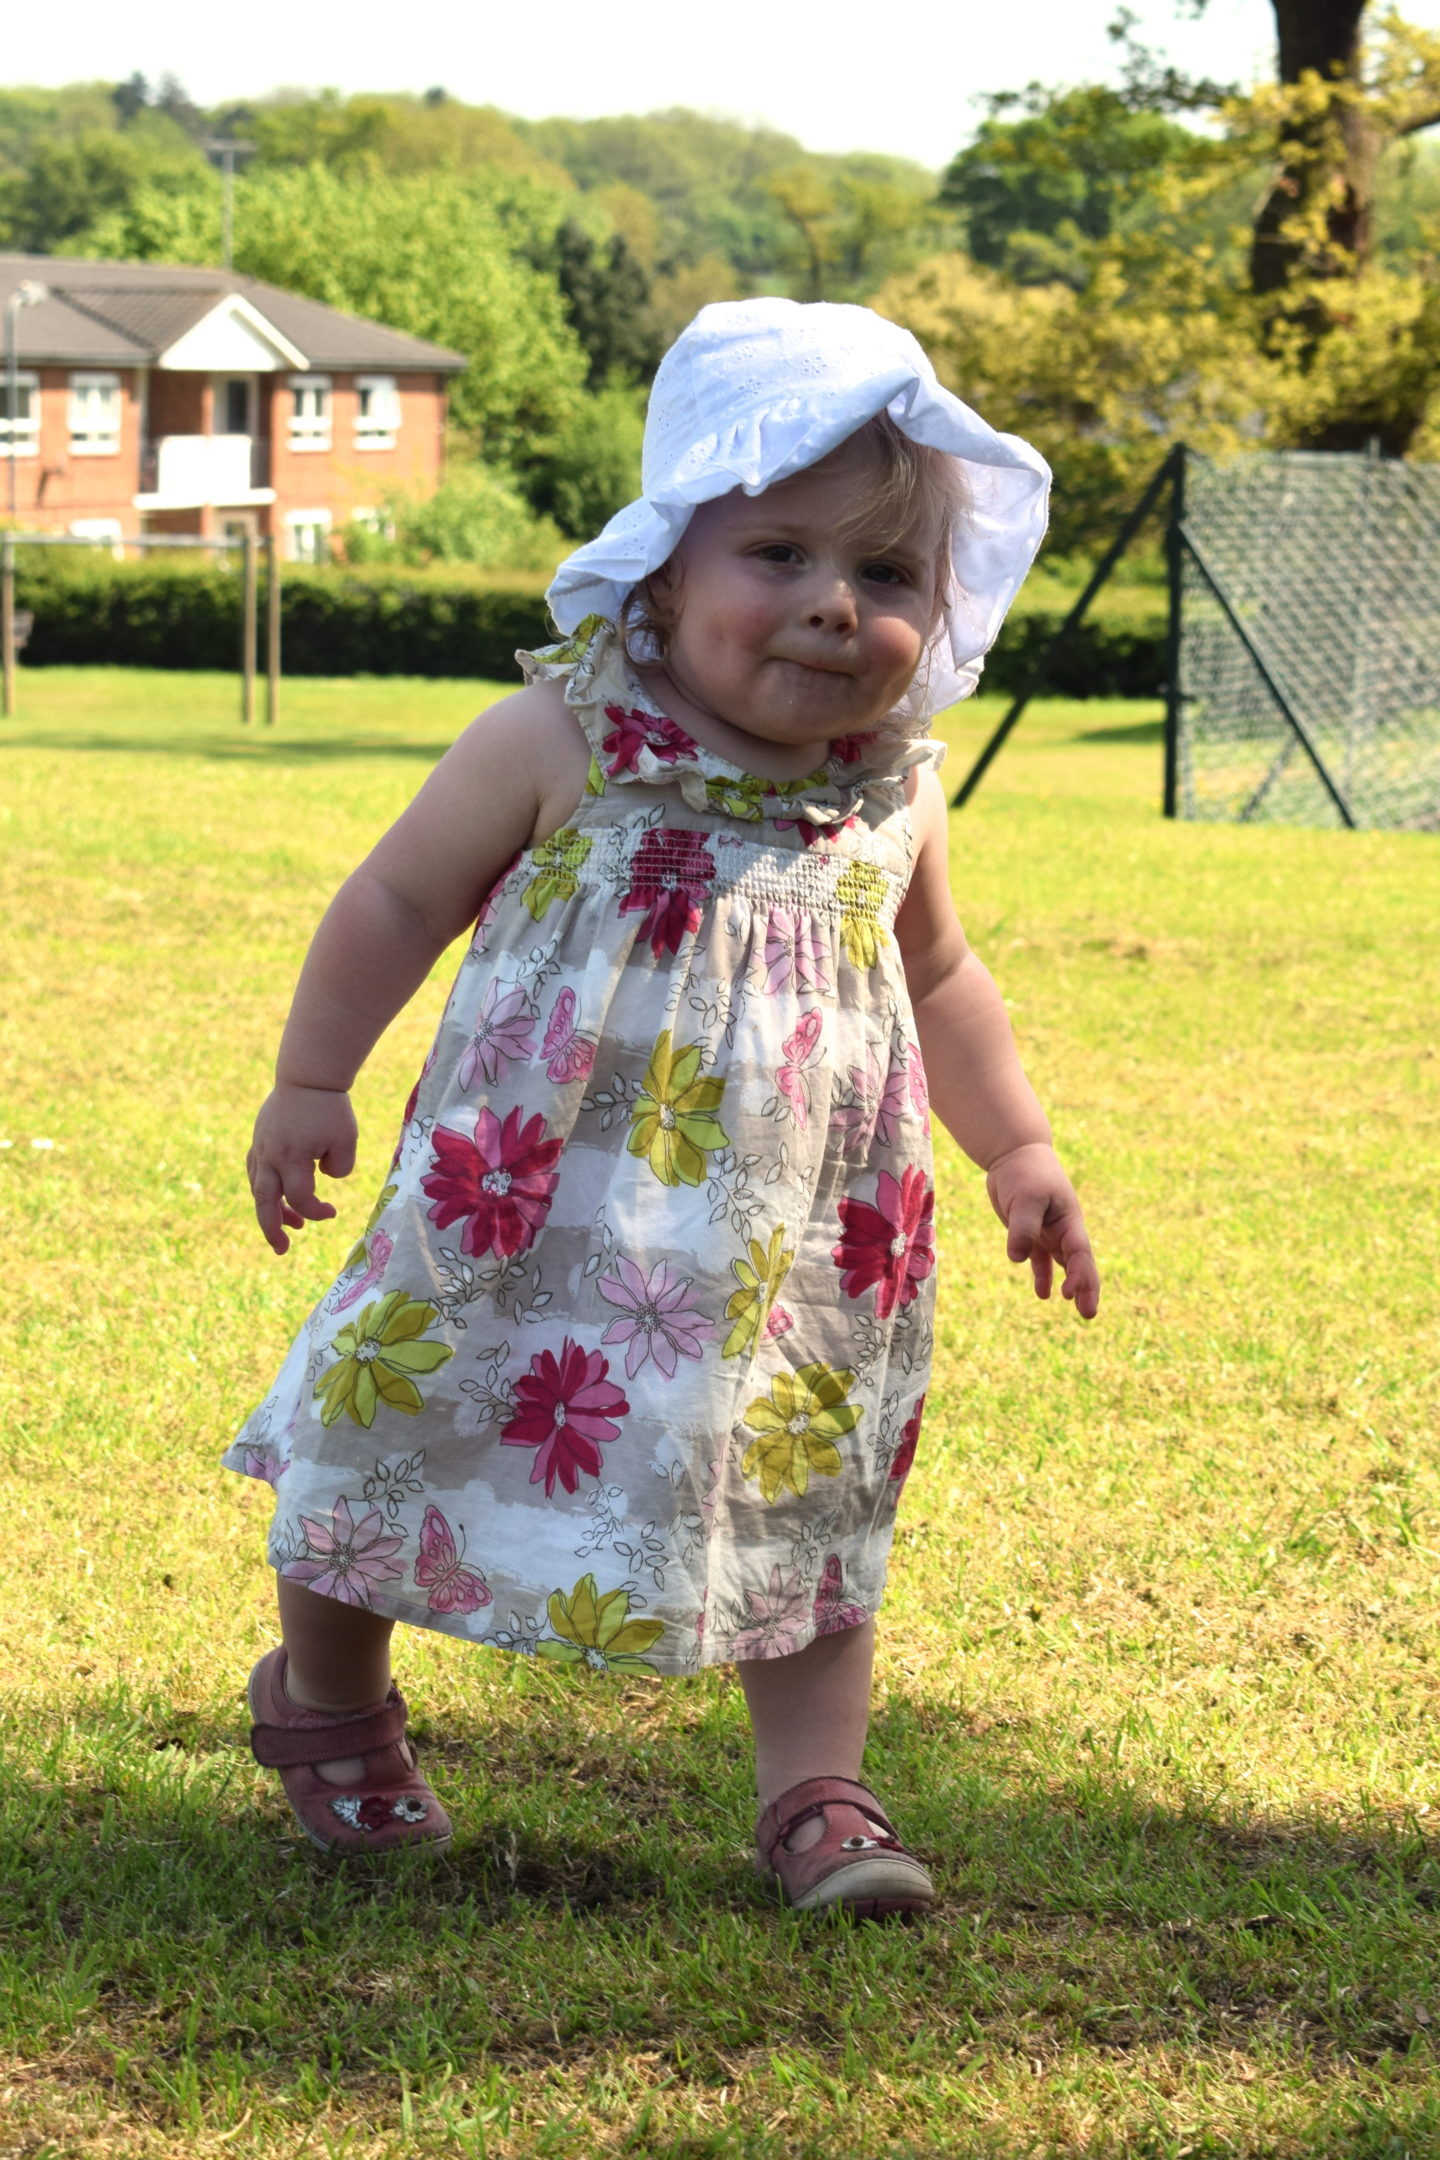 14 months old girl in sun dress and hat, in the park